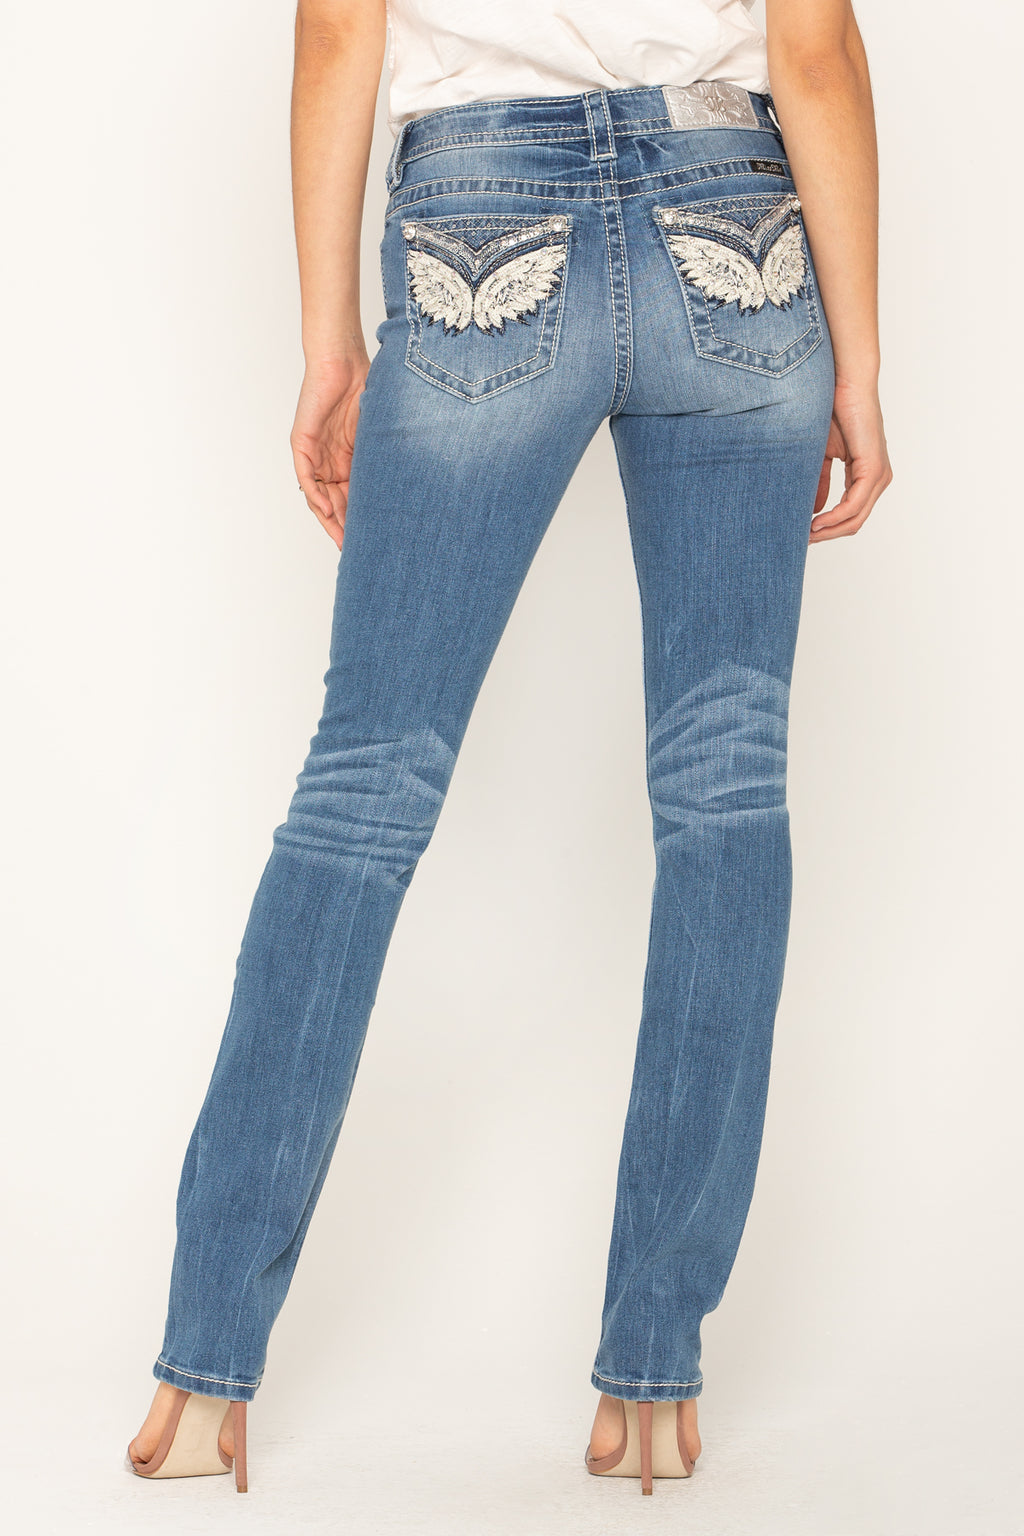 a377efcf31c86 SWEET MOMENT STRAIGHT JEANS